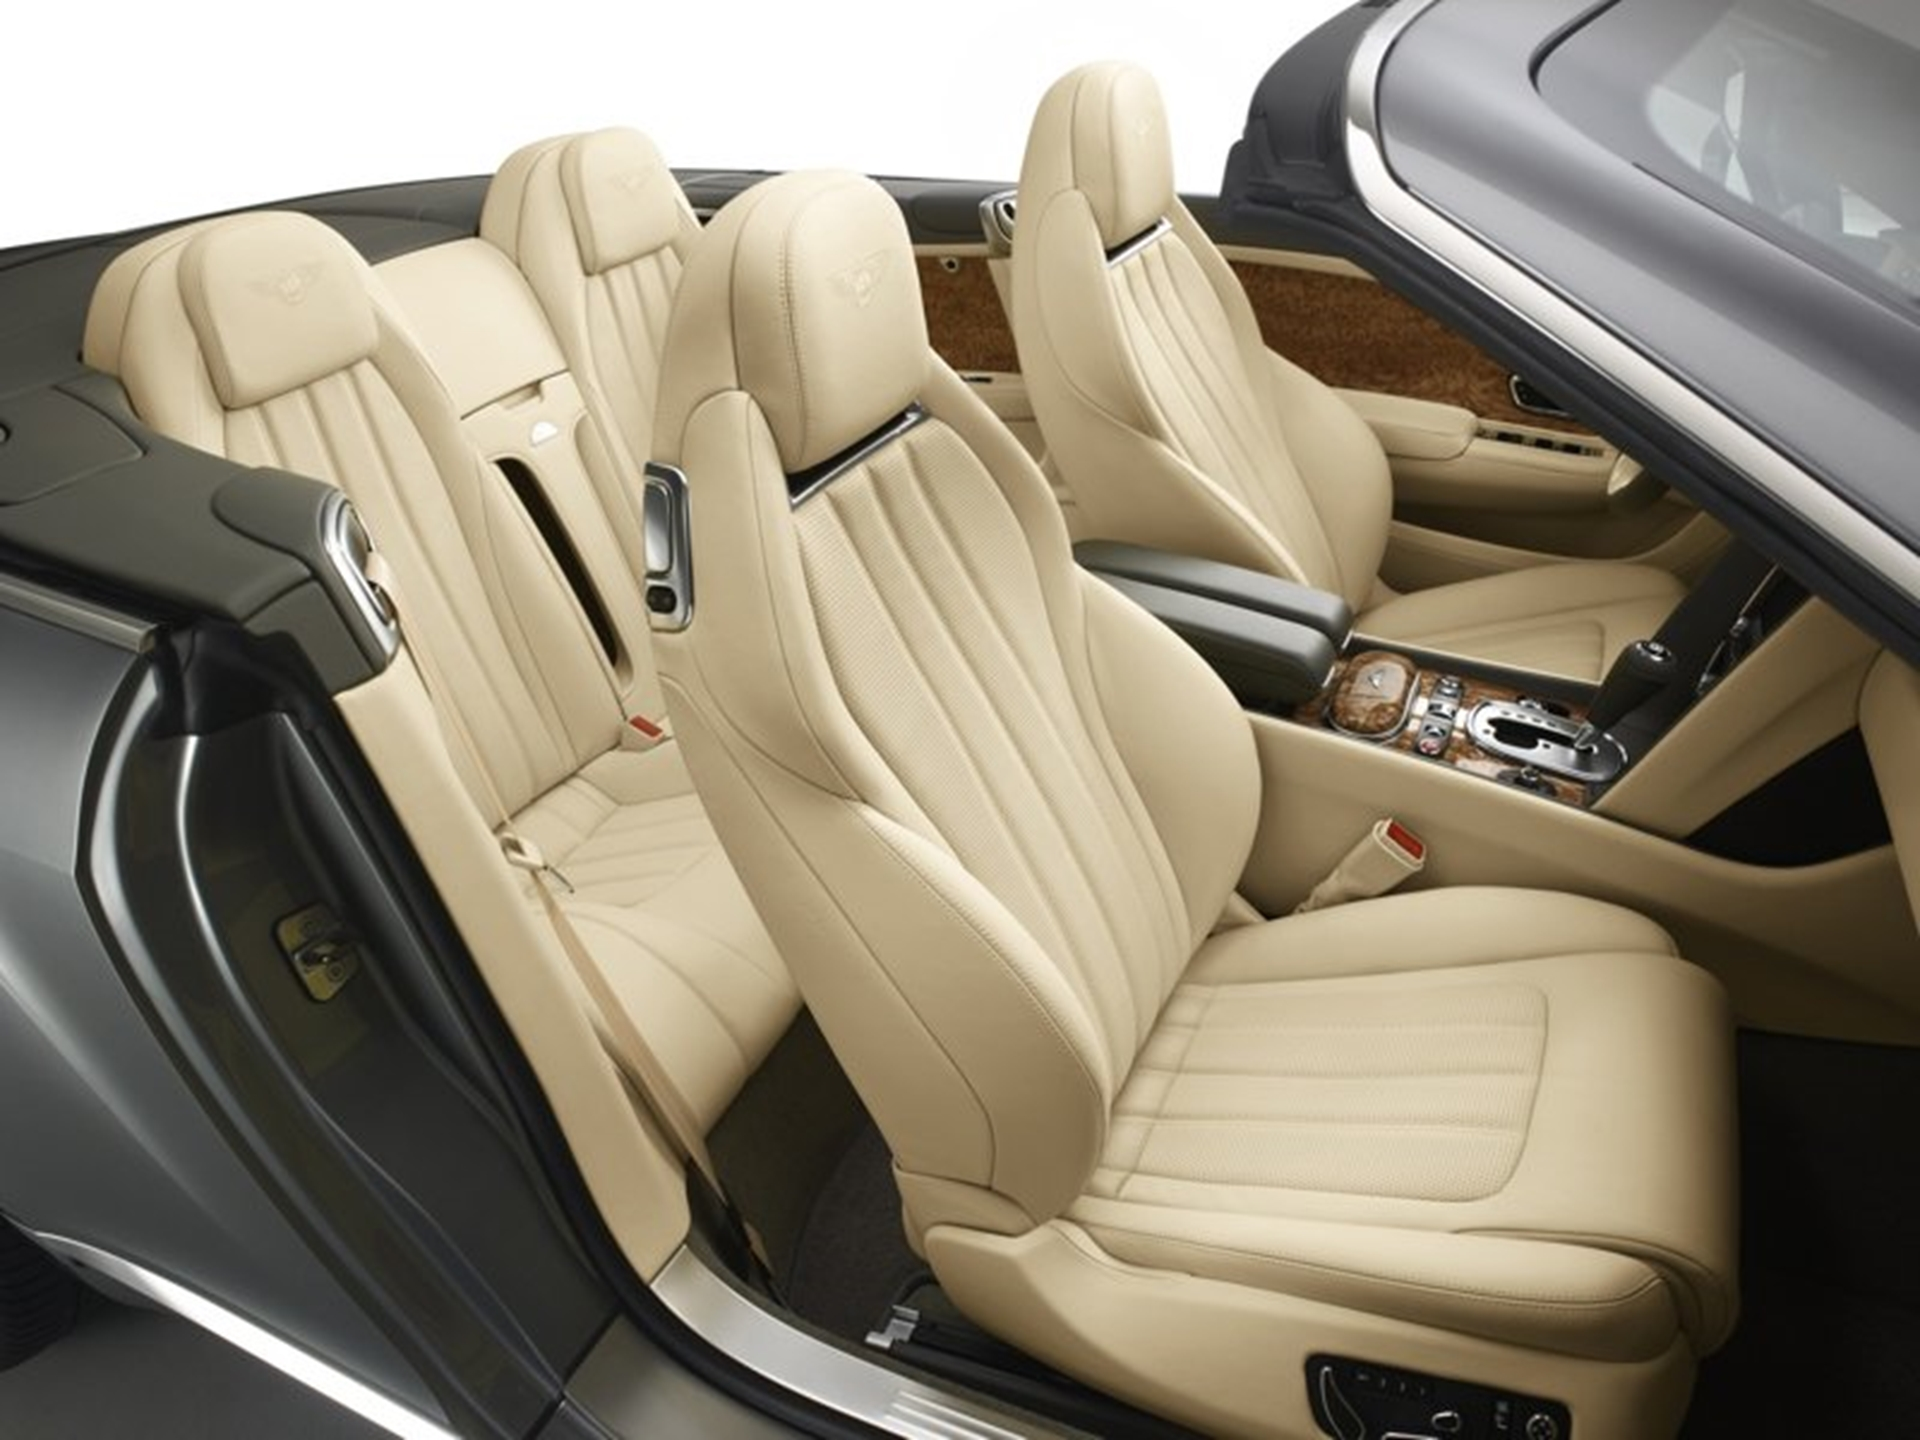 Bentley Interior GTC